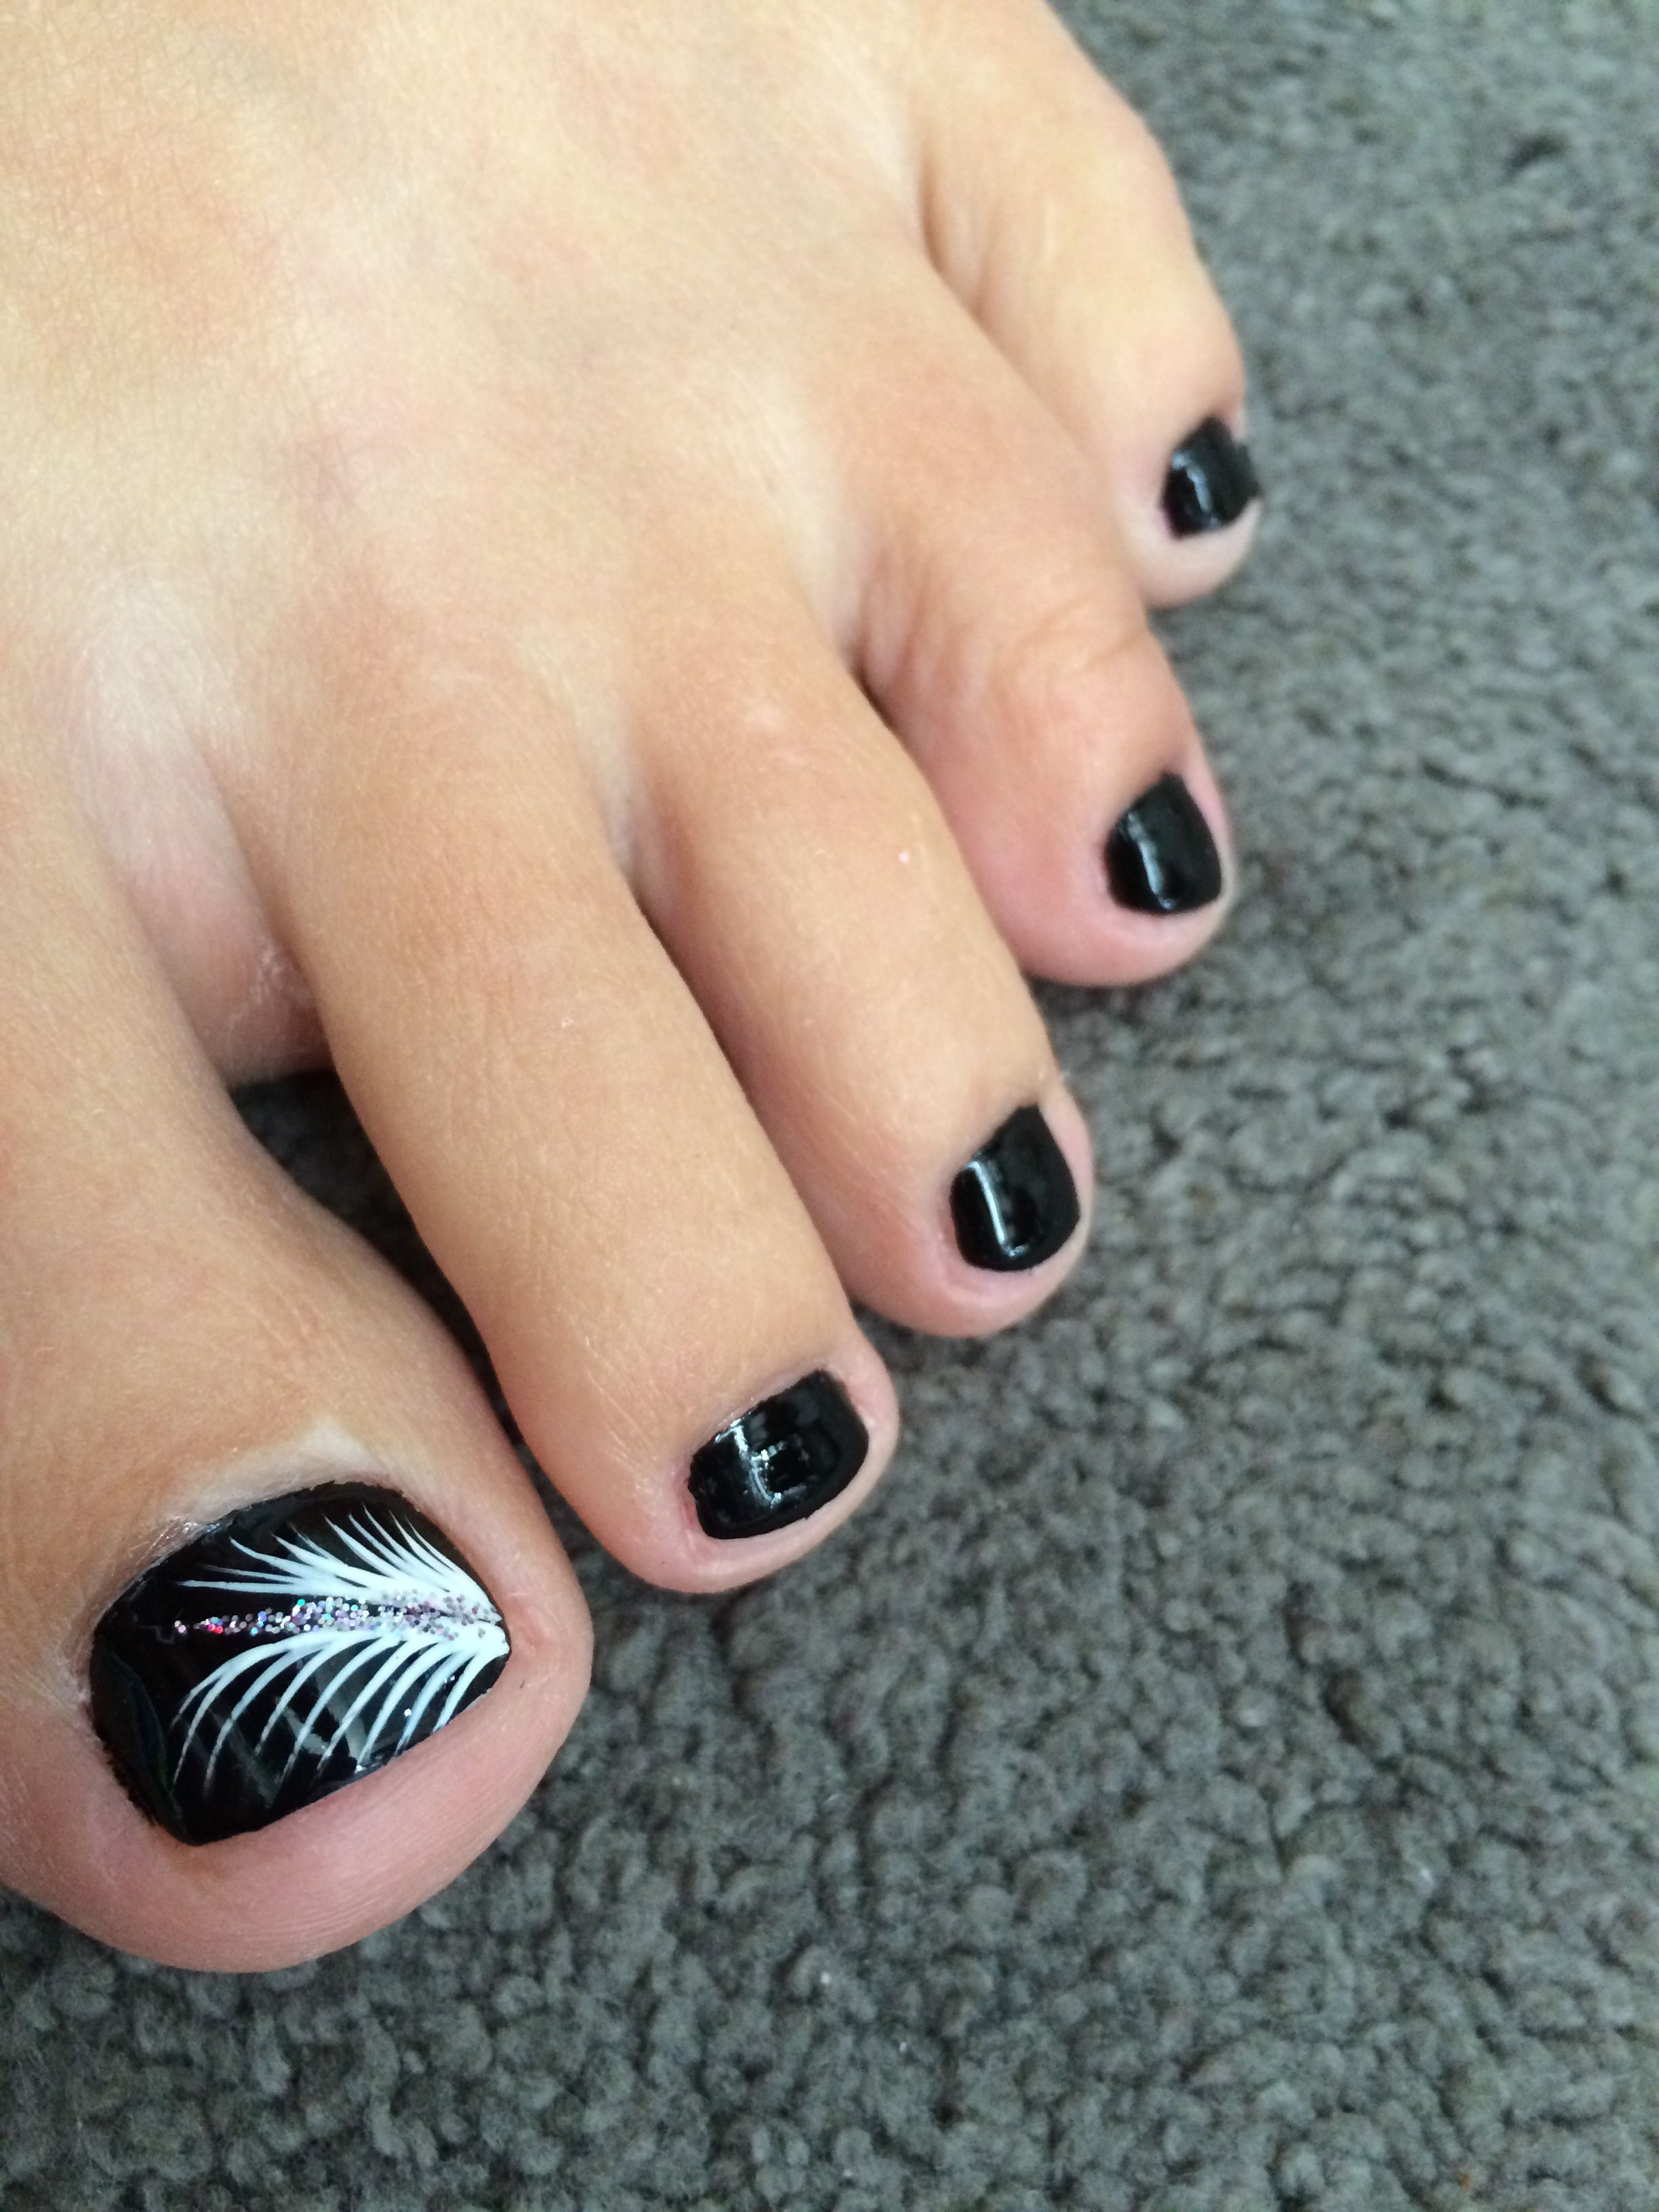 Pin By Judy Zimmerman On Pedi And Mani